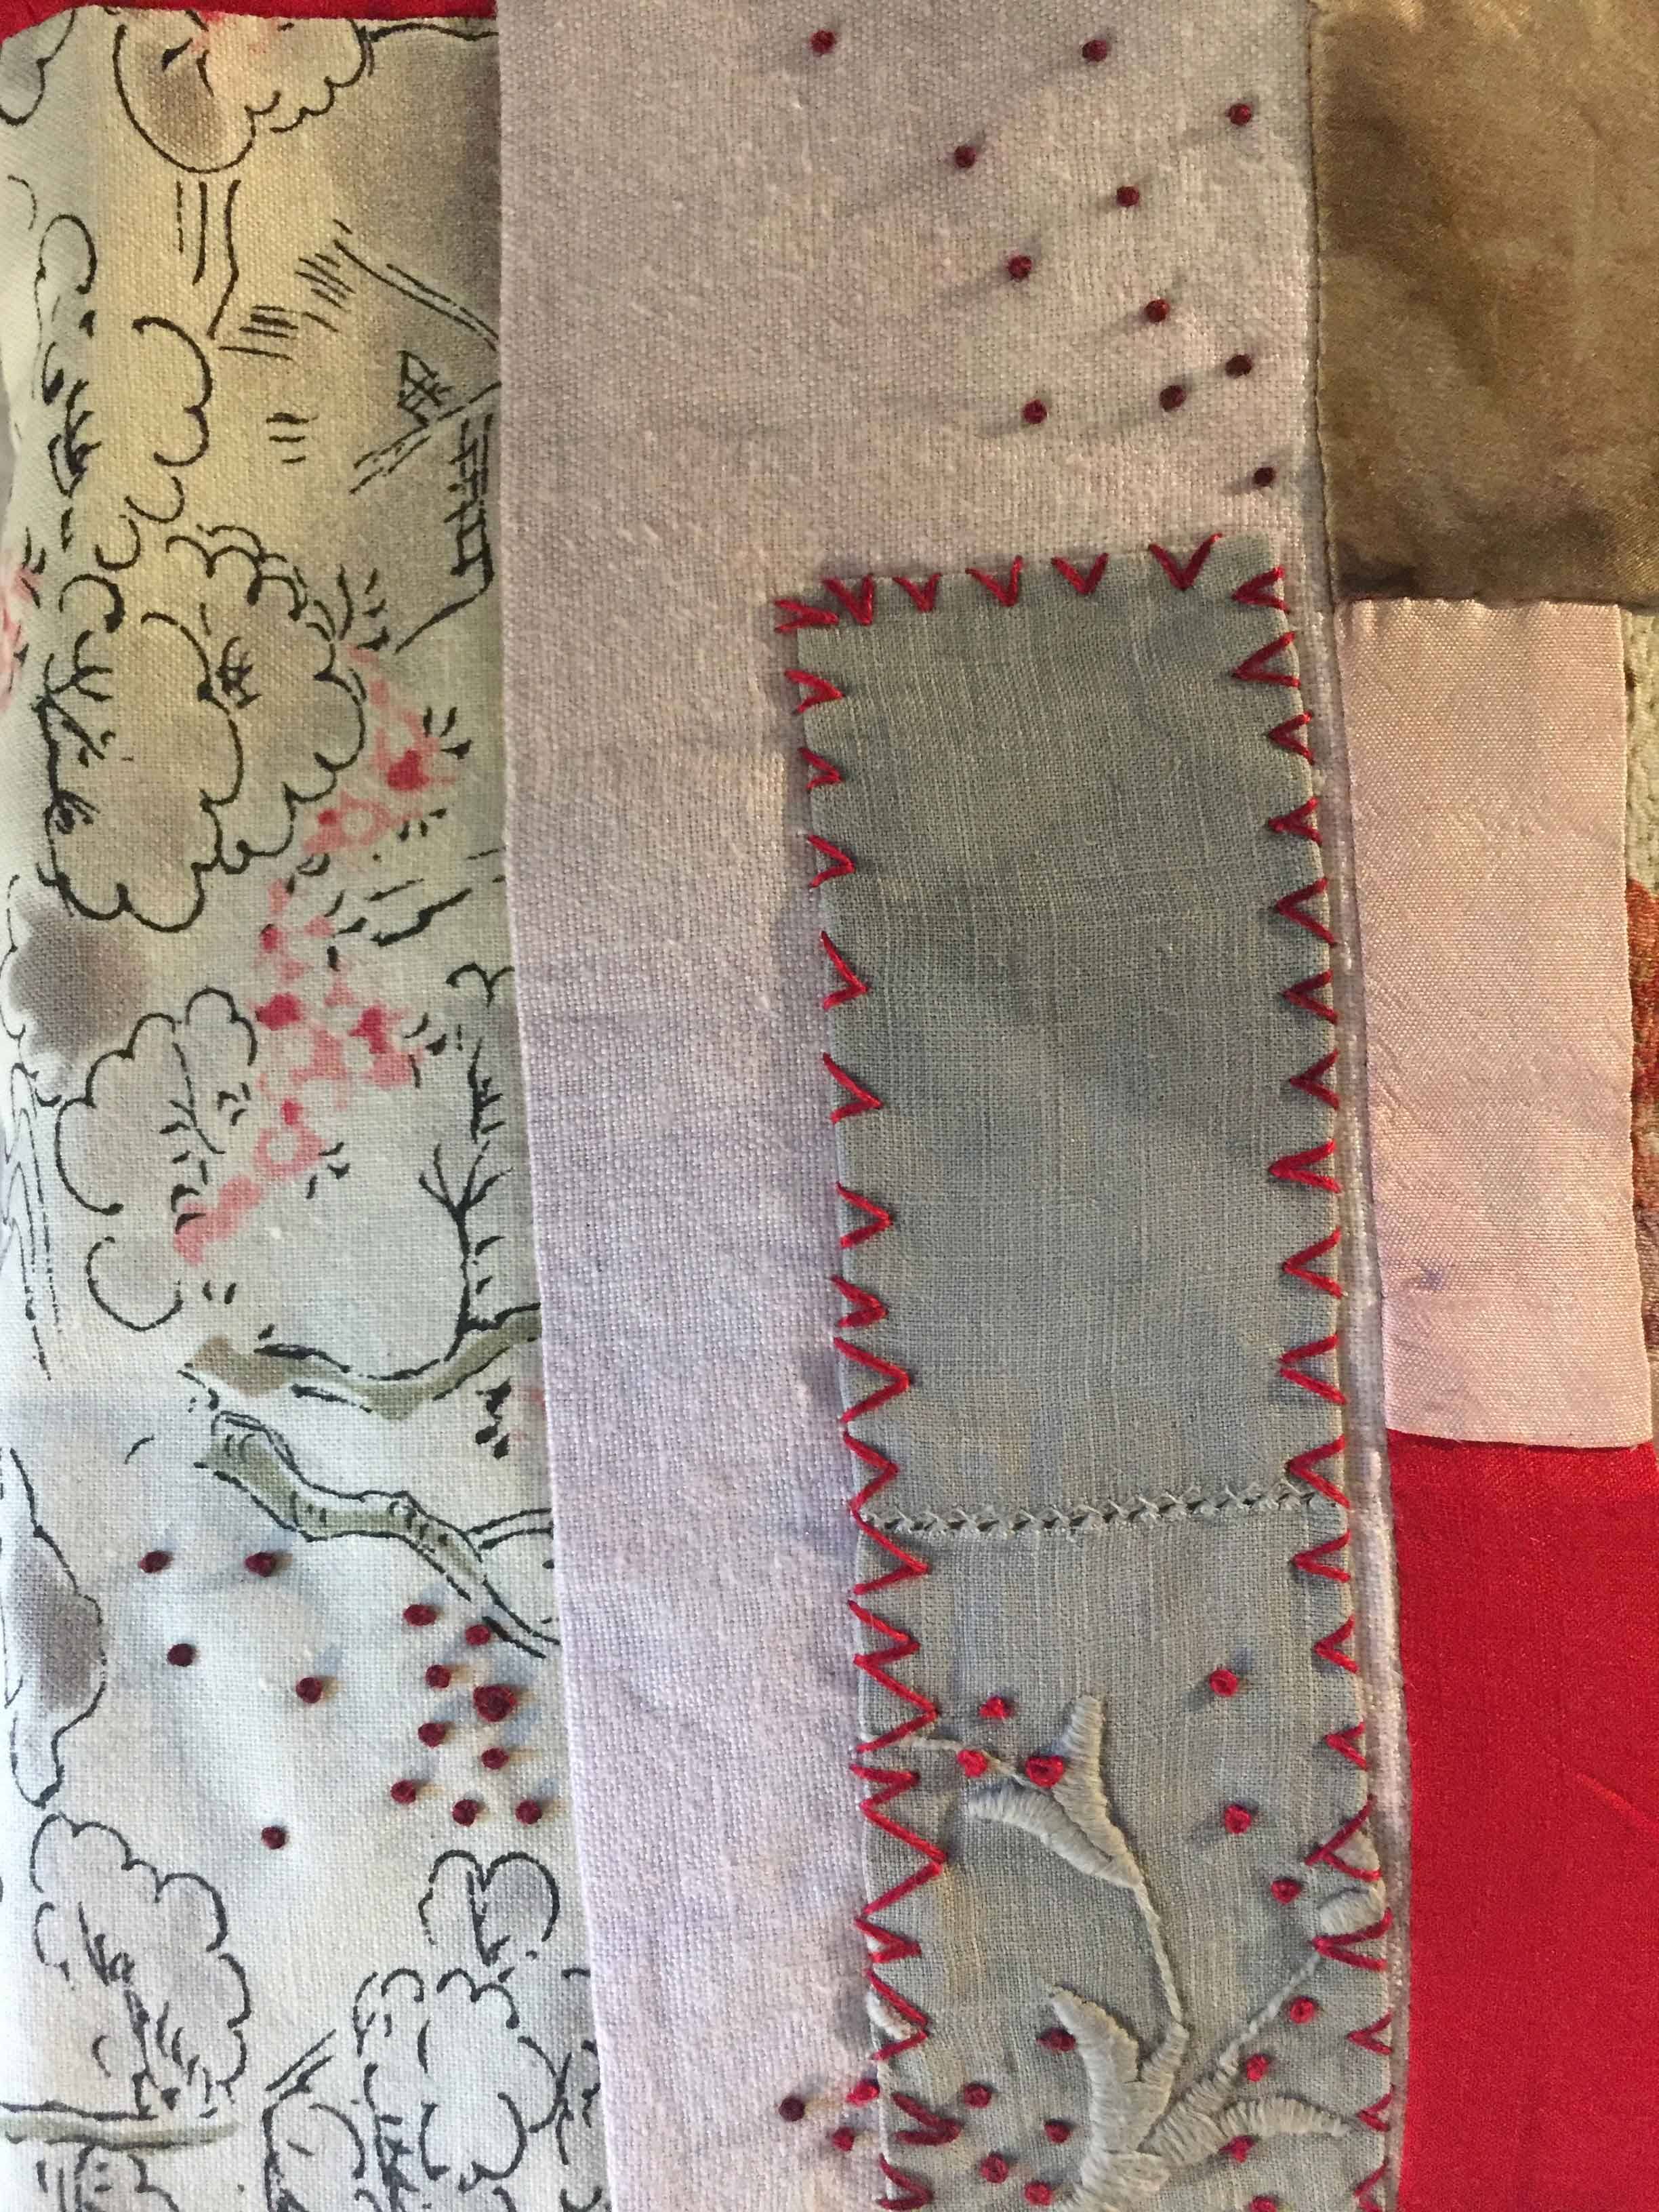 4_Delzell_Asian-Red-and-Pink-Embroidered-Pillows_web.jpg